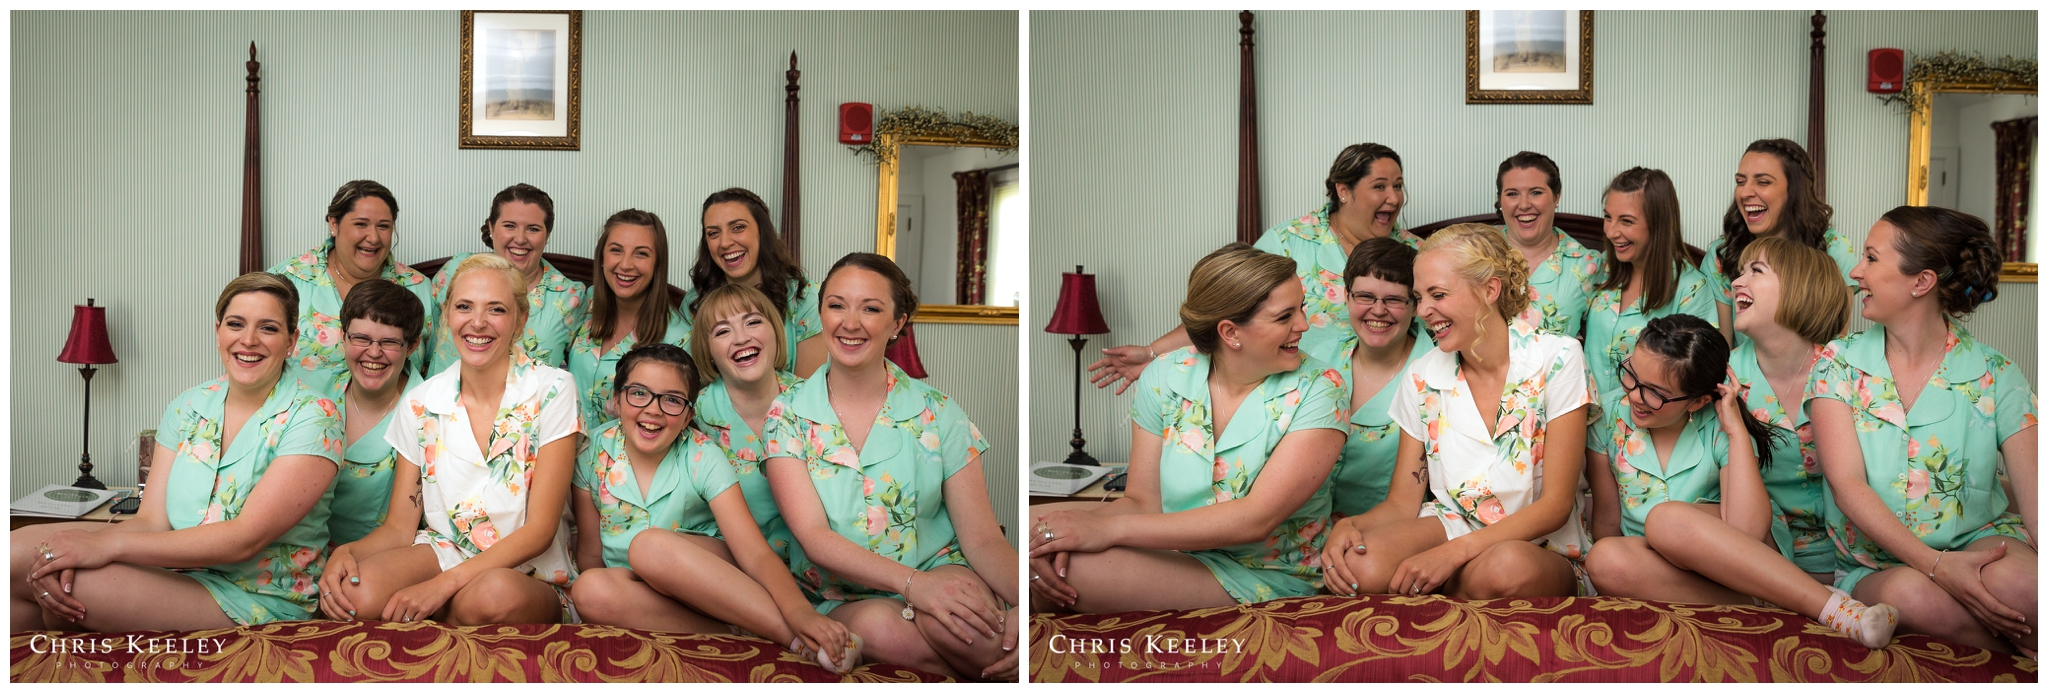 bride-and-bridesmaids-on-bed.jpg